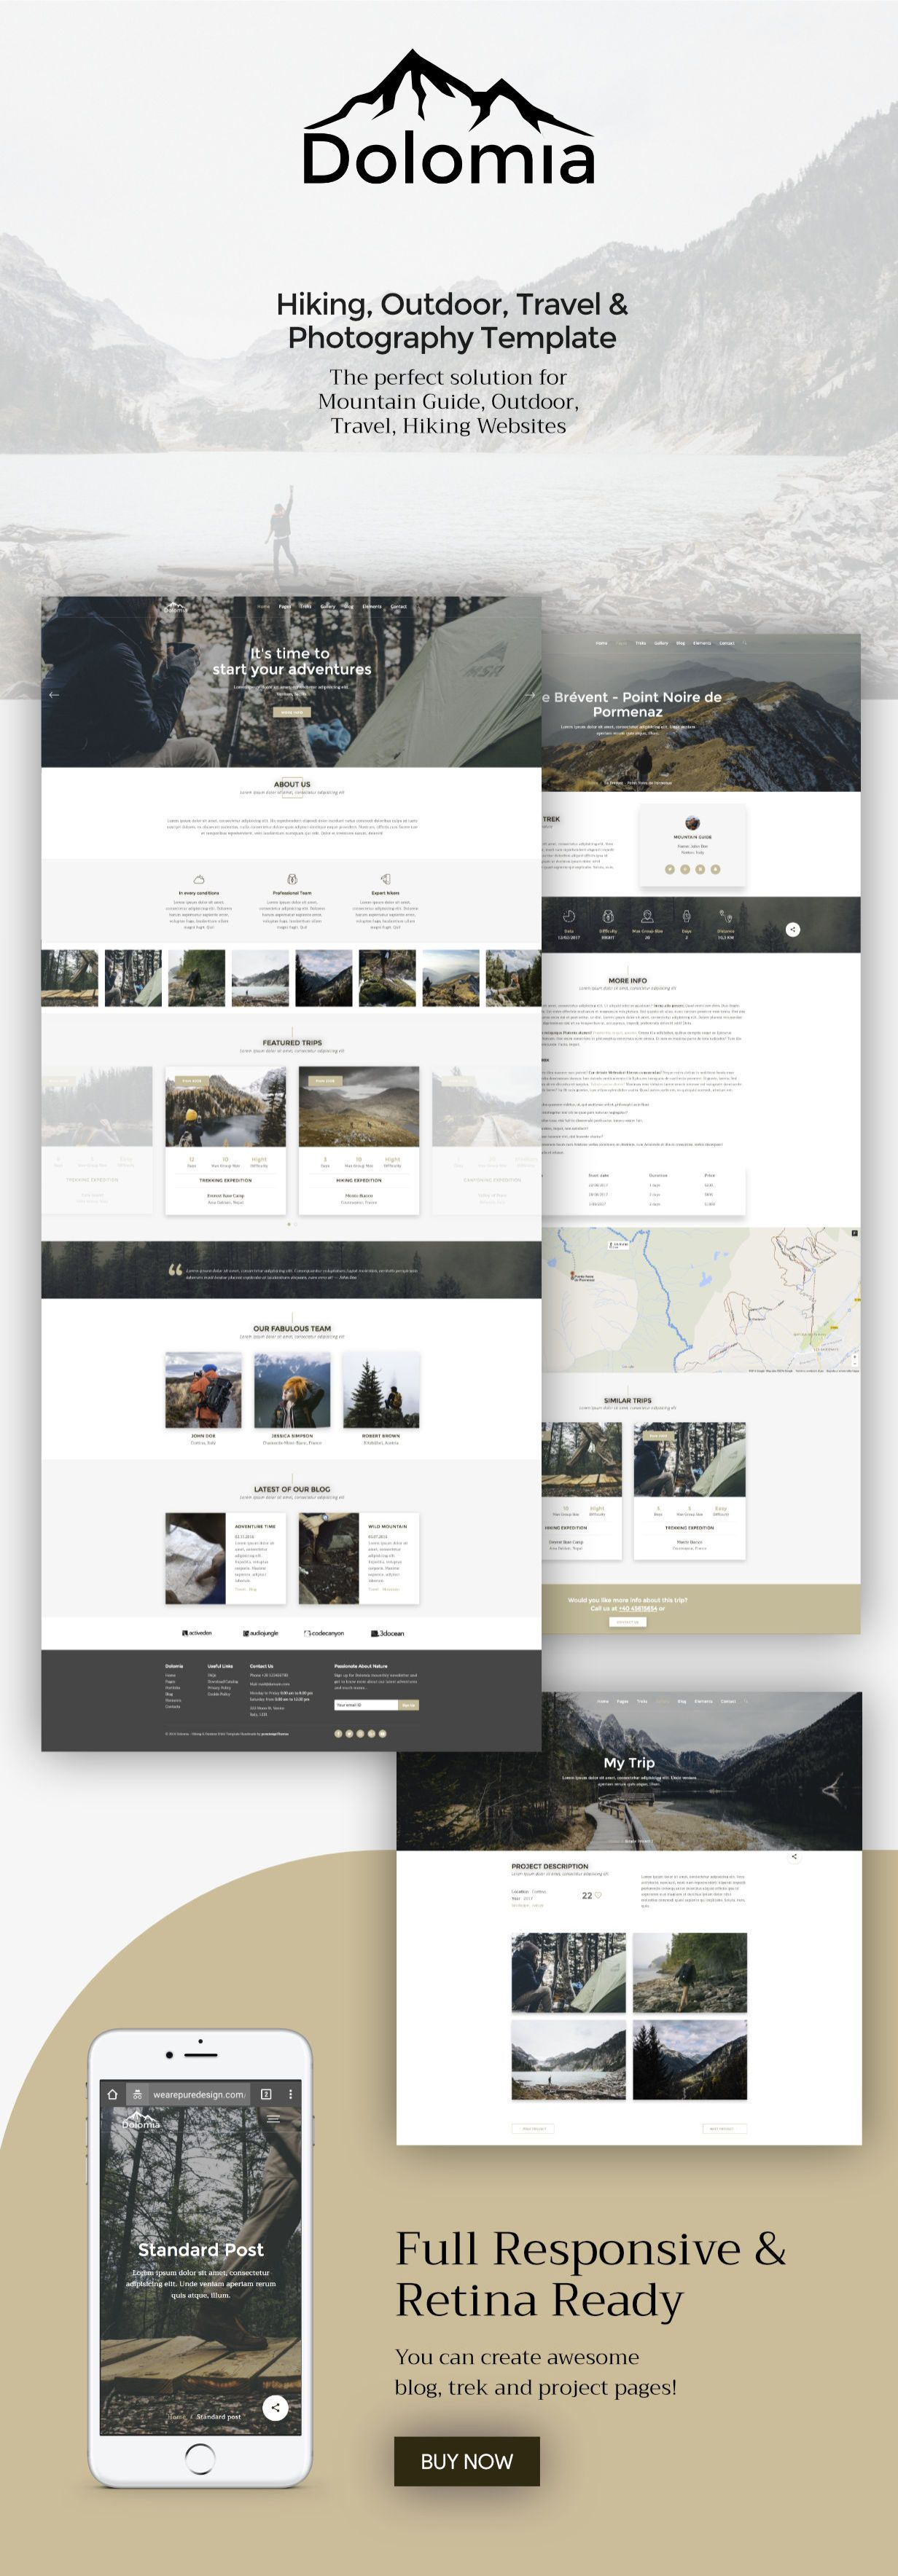 Dolomia - Hiking, Outdoor, Mountain Guide HTML Template | Clean ...